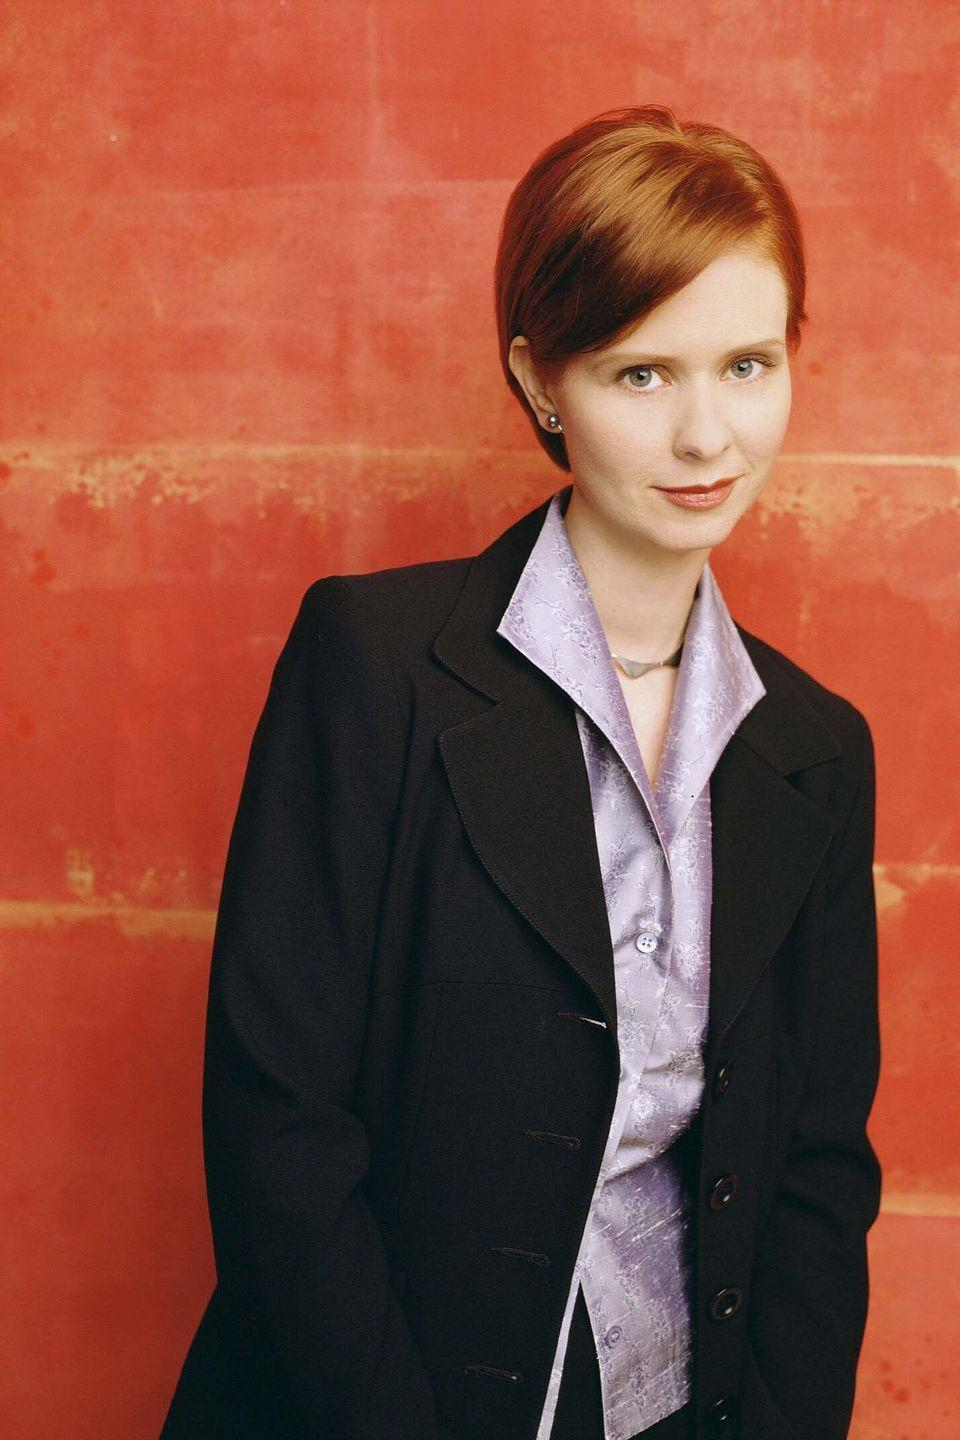 <p>While you could definitely take a cue from preppy Charlotte York or from Samantha Jones' colourful wardrobe, there is no greater workwear inspiration in Sex and the City than hotshot lawyer Miranda Hobbes, played by Cynthia Nixon, whose late Nineties/early Noughties tailoring is pure perfection.</p>